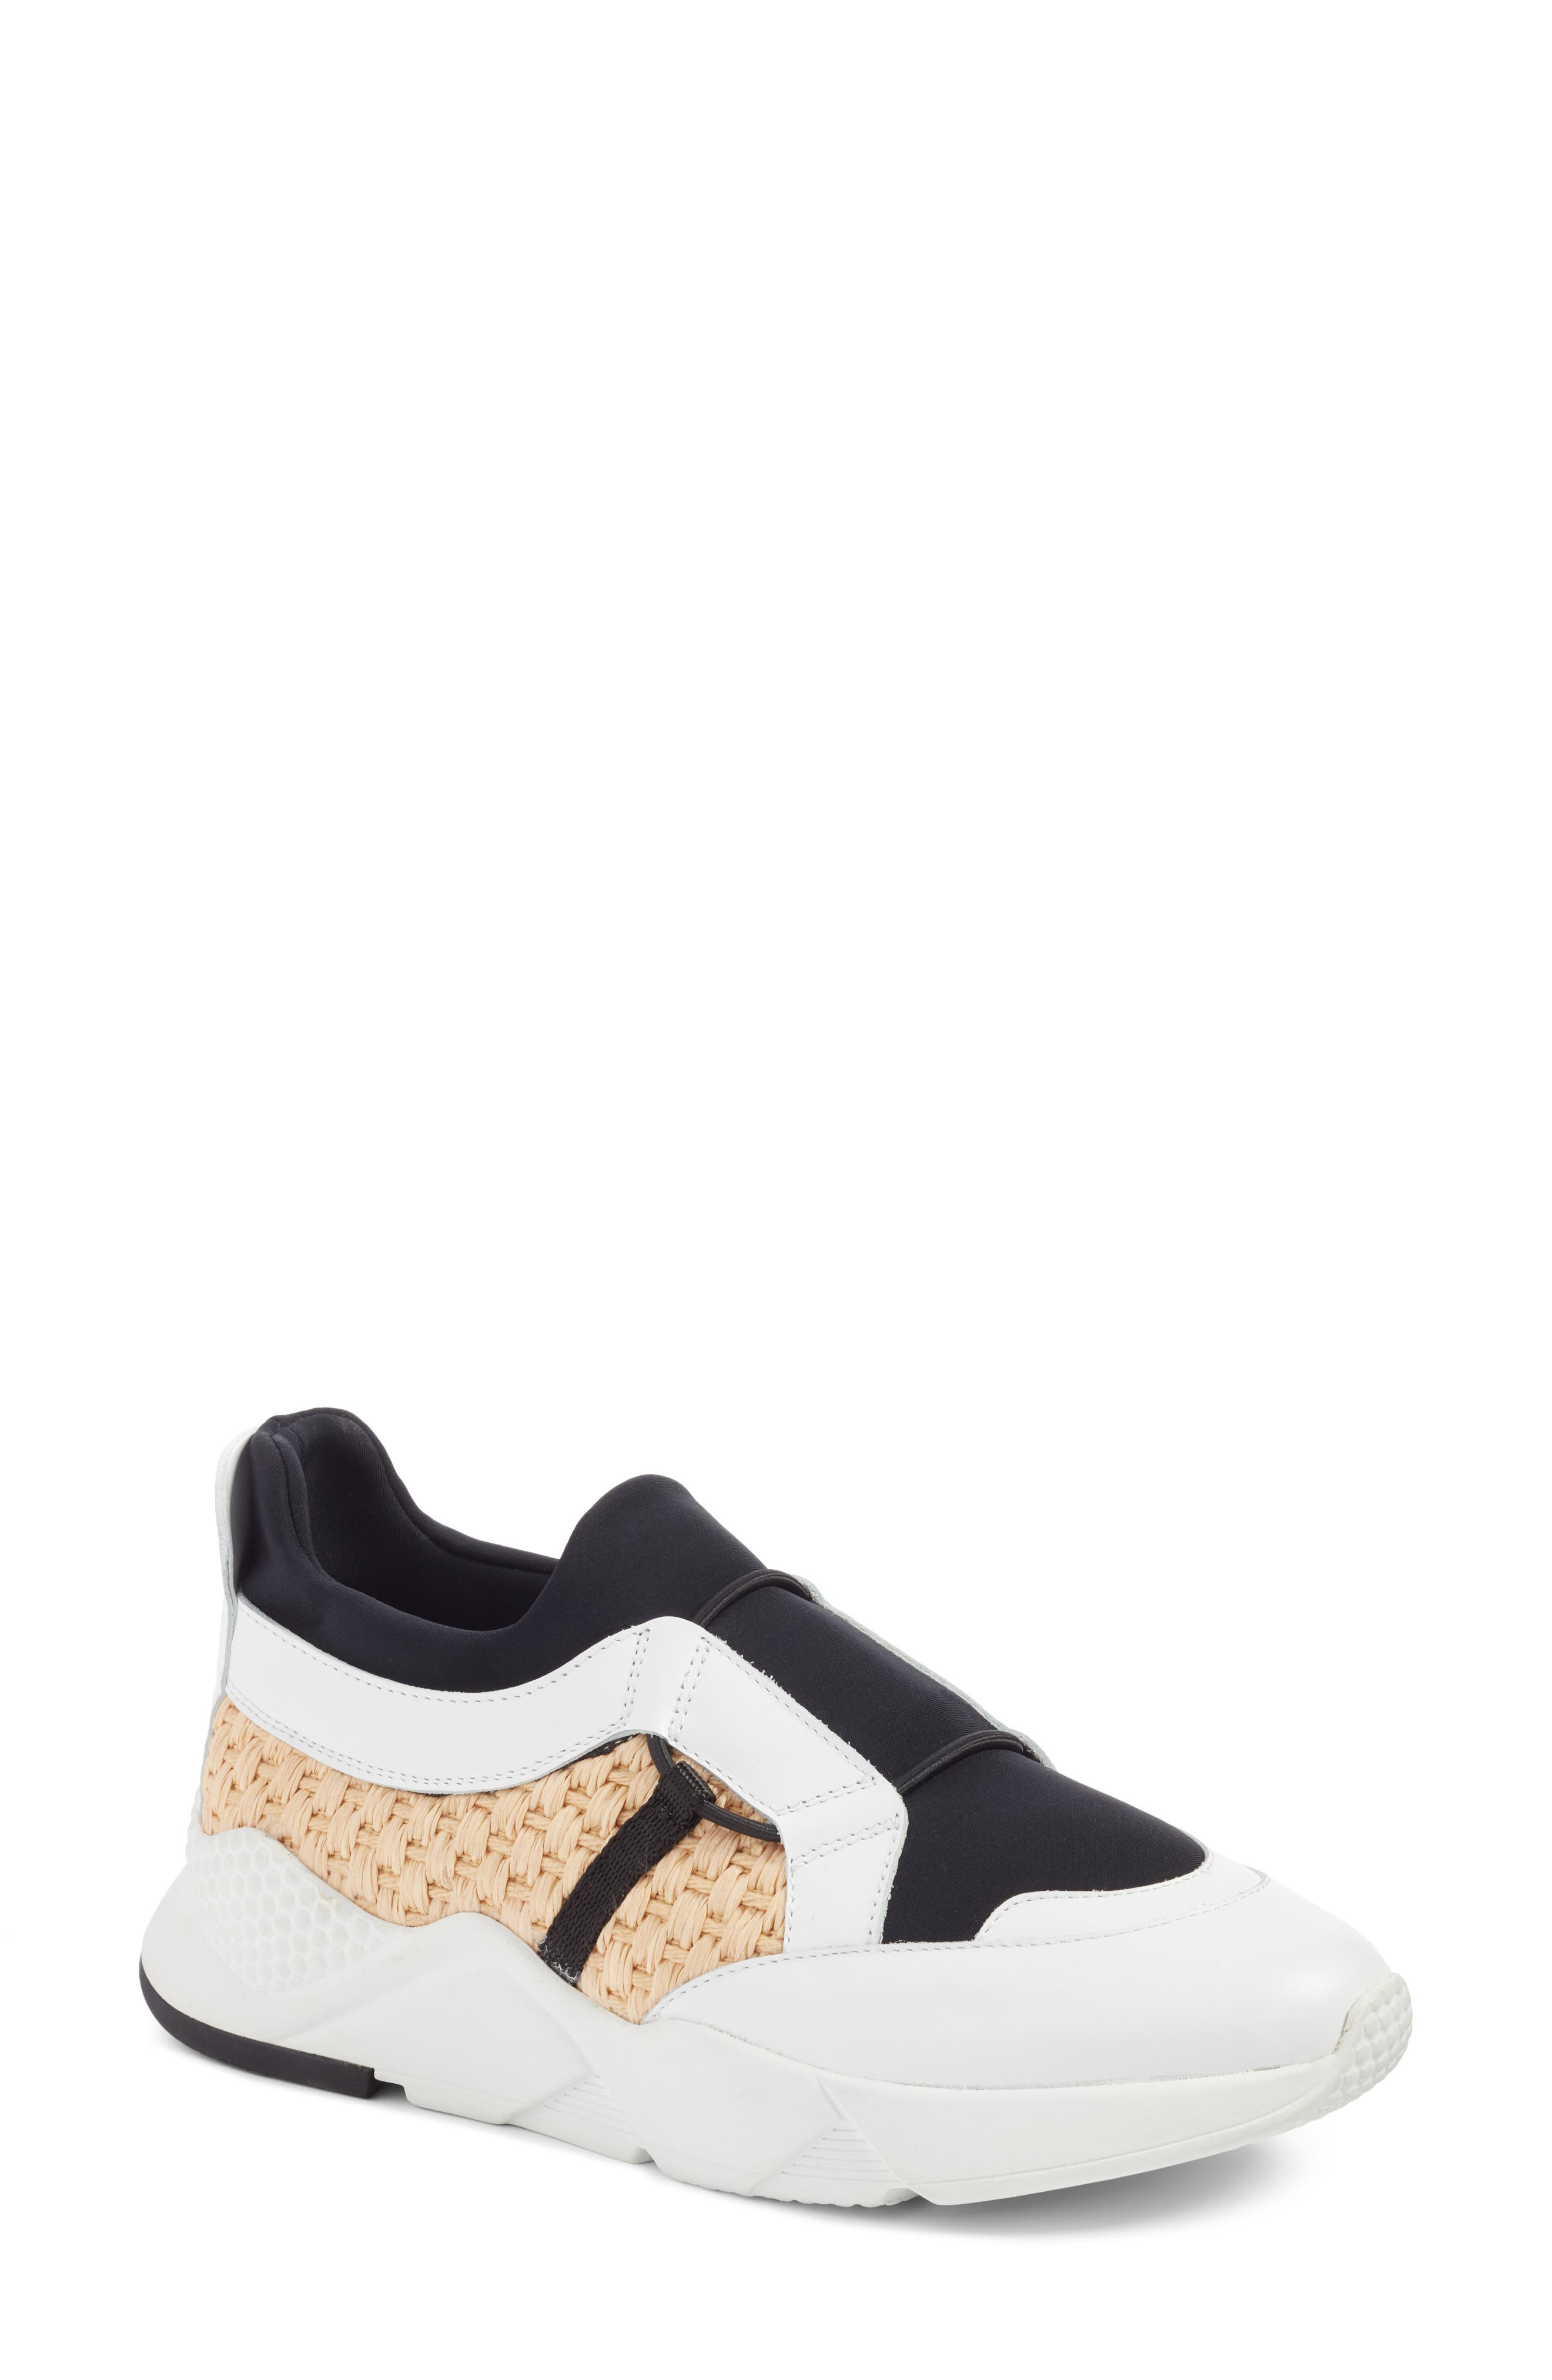 Alternate Image 1 Selected - Robert Clergerie Salvy Woven Sneaker (Women)